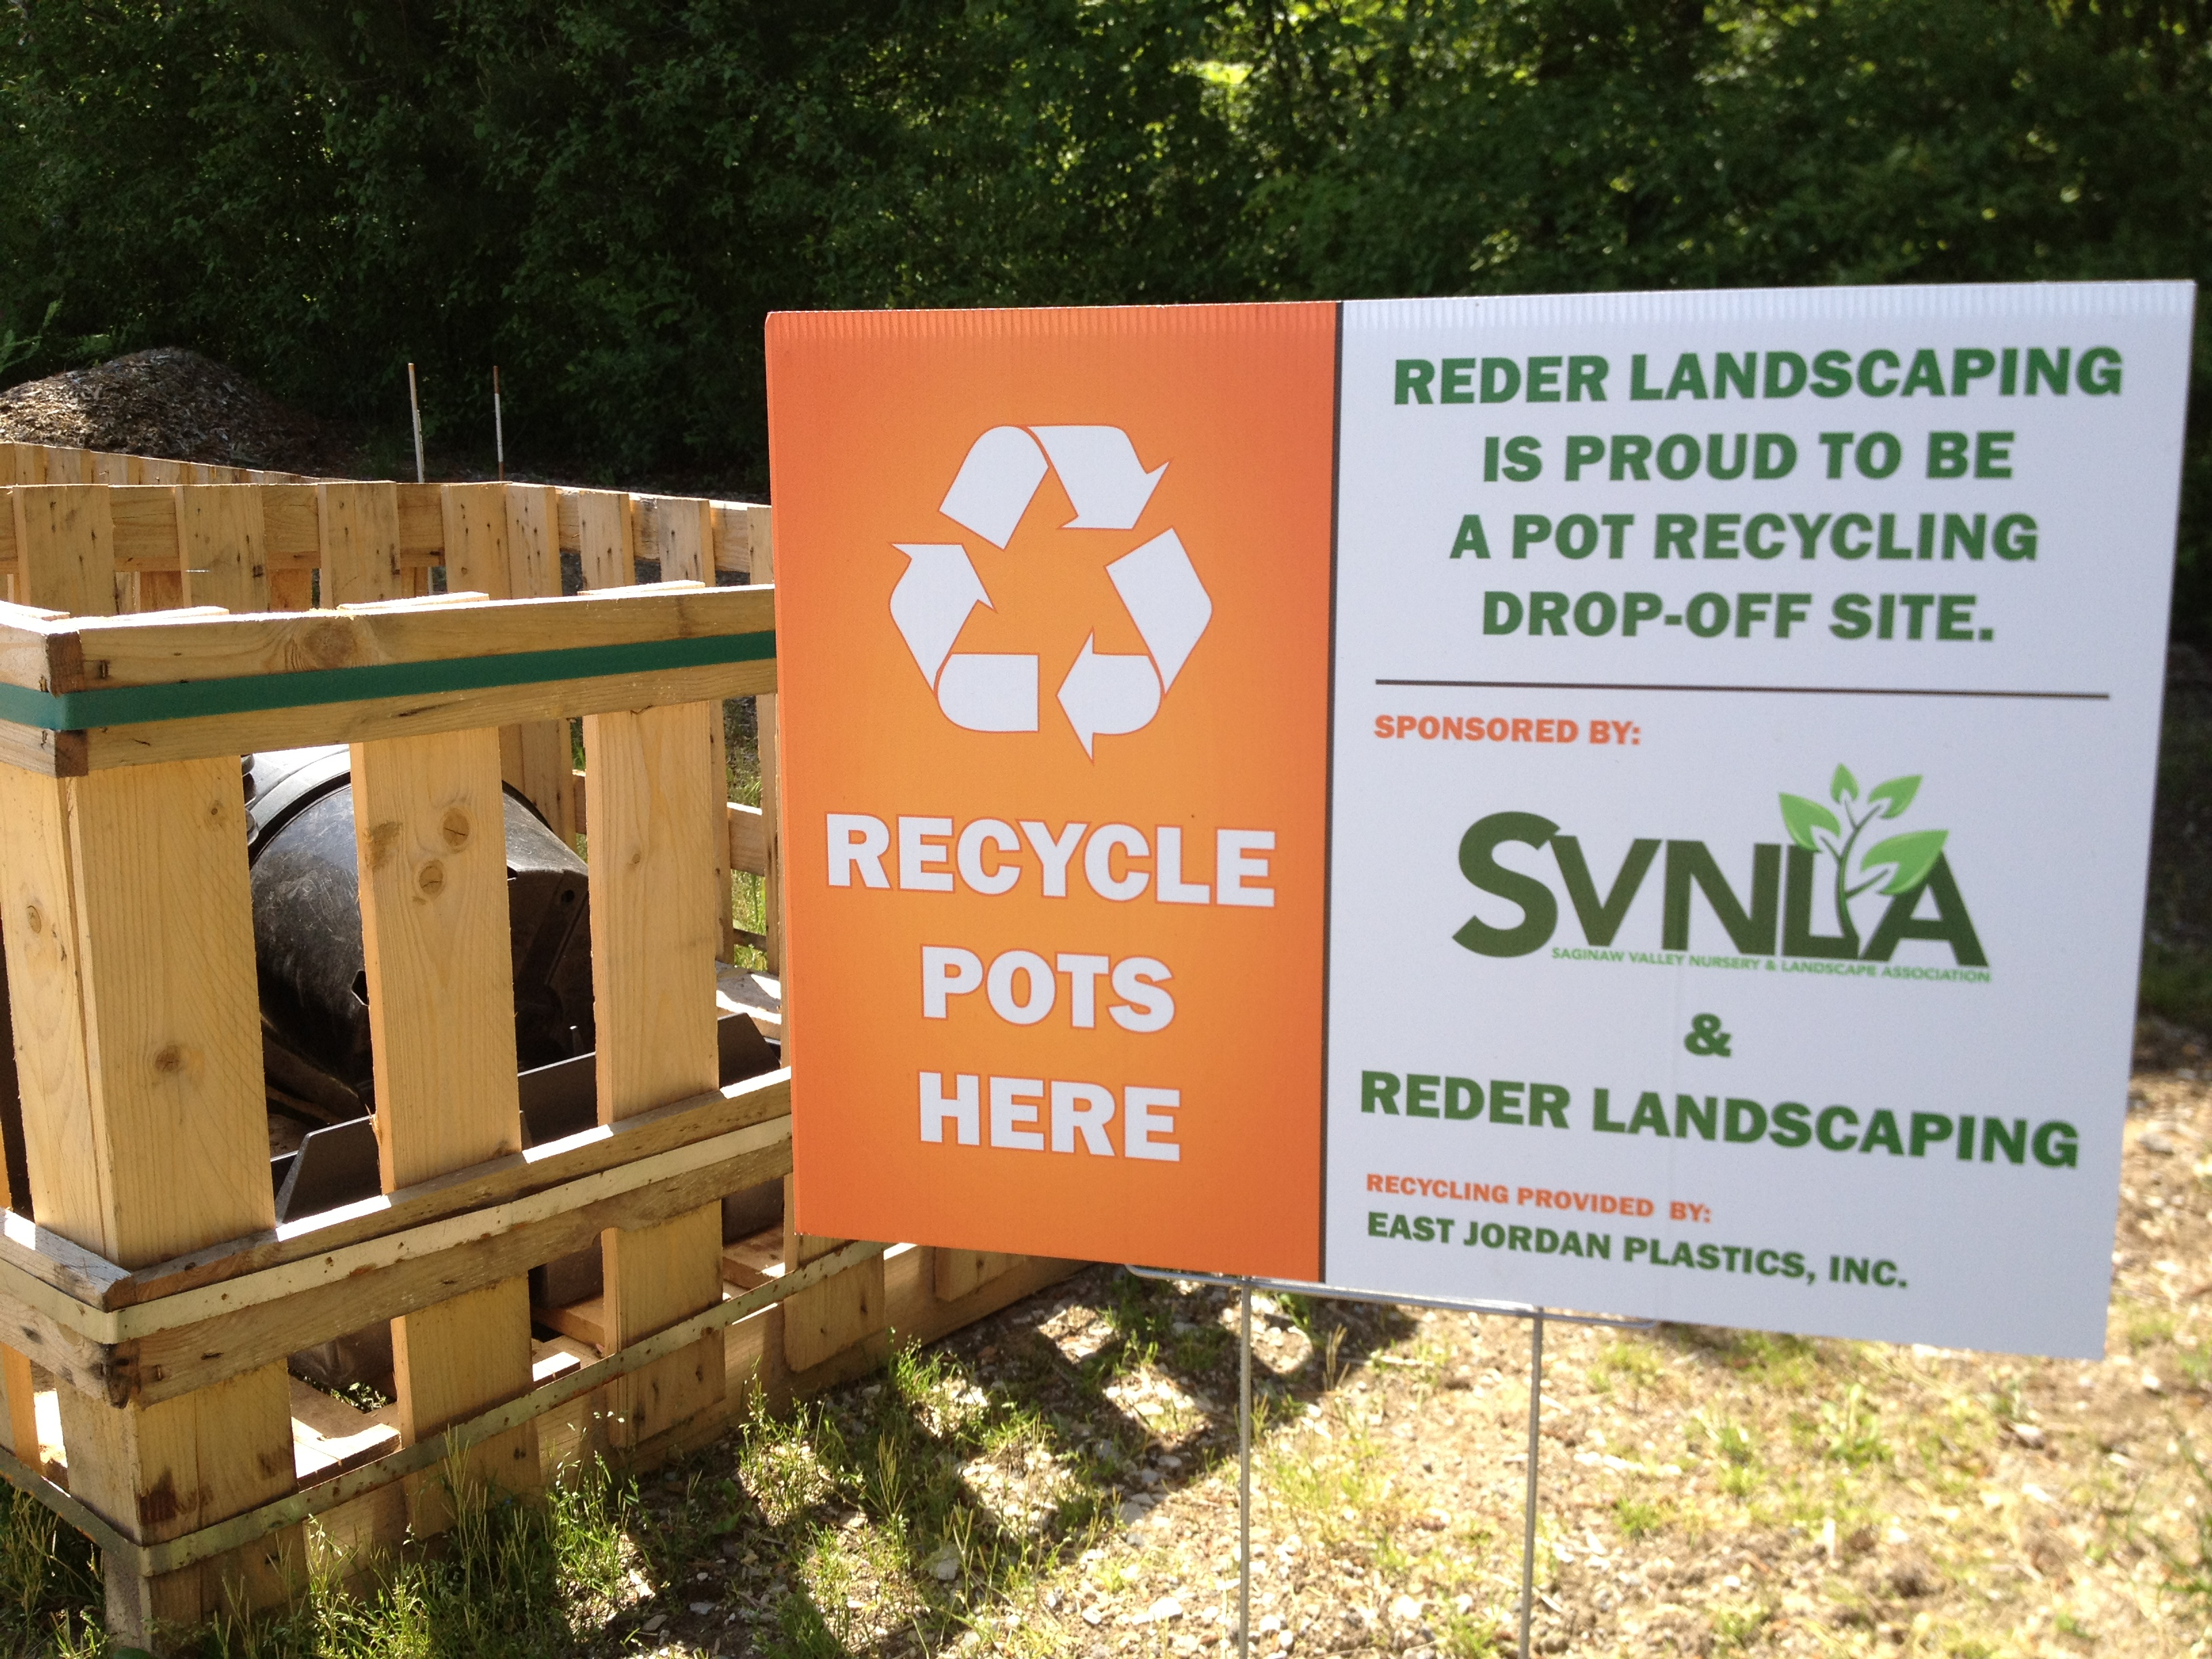 SVNLA Nursery Container Recycling Program